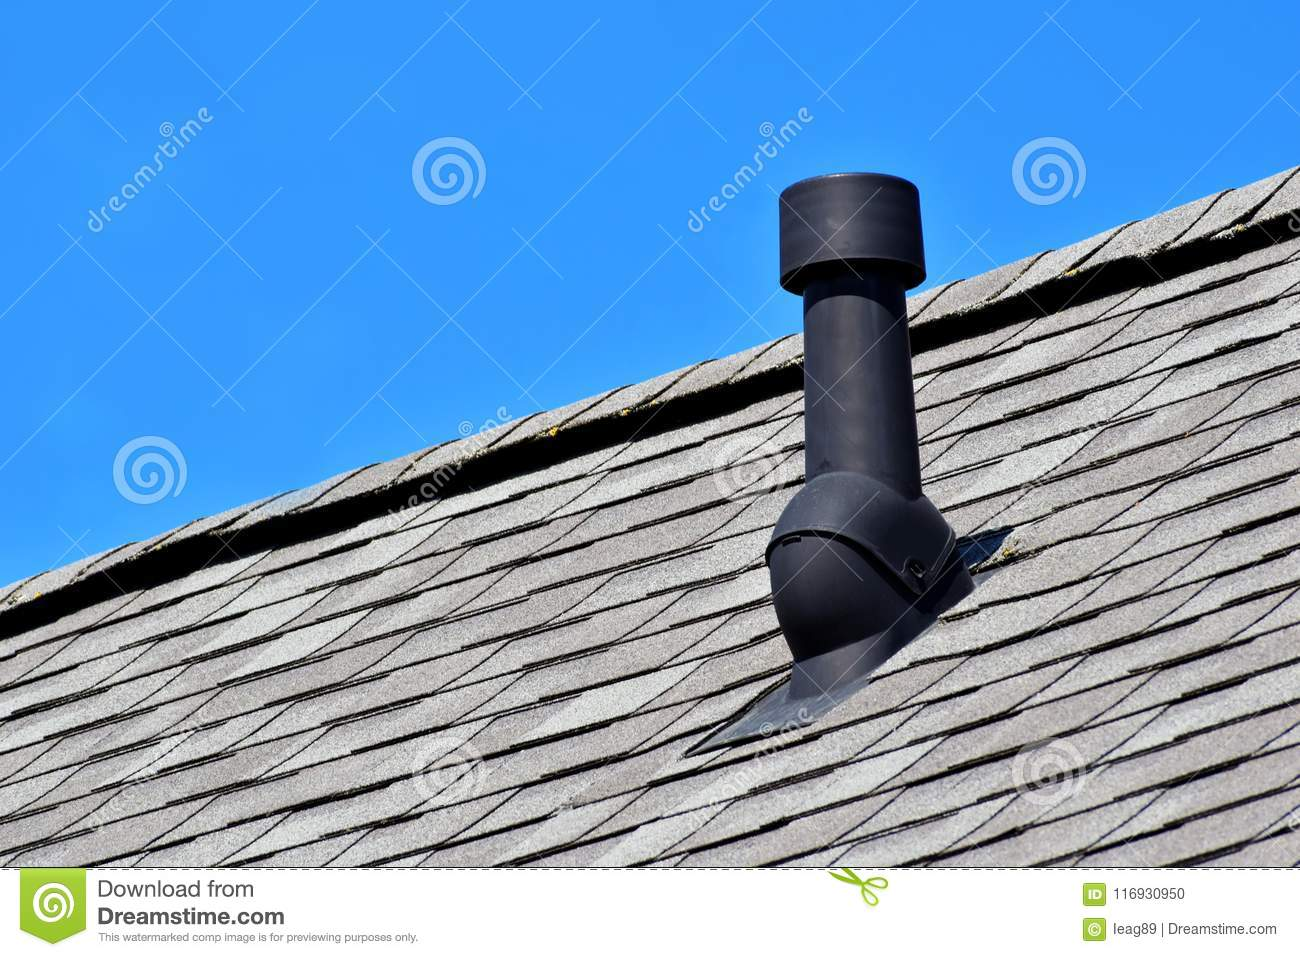 Air Vent On The Roof Royalty Free Stock Photography